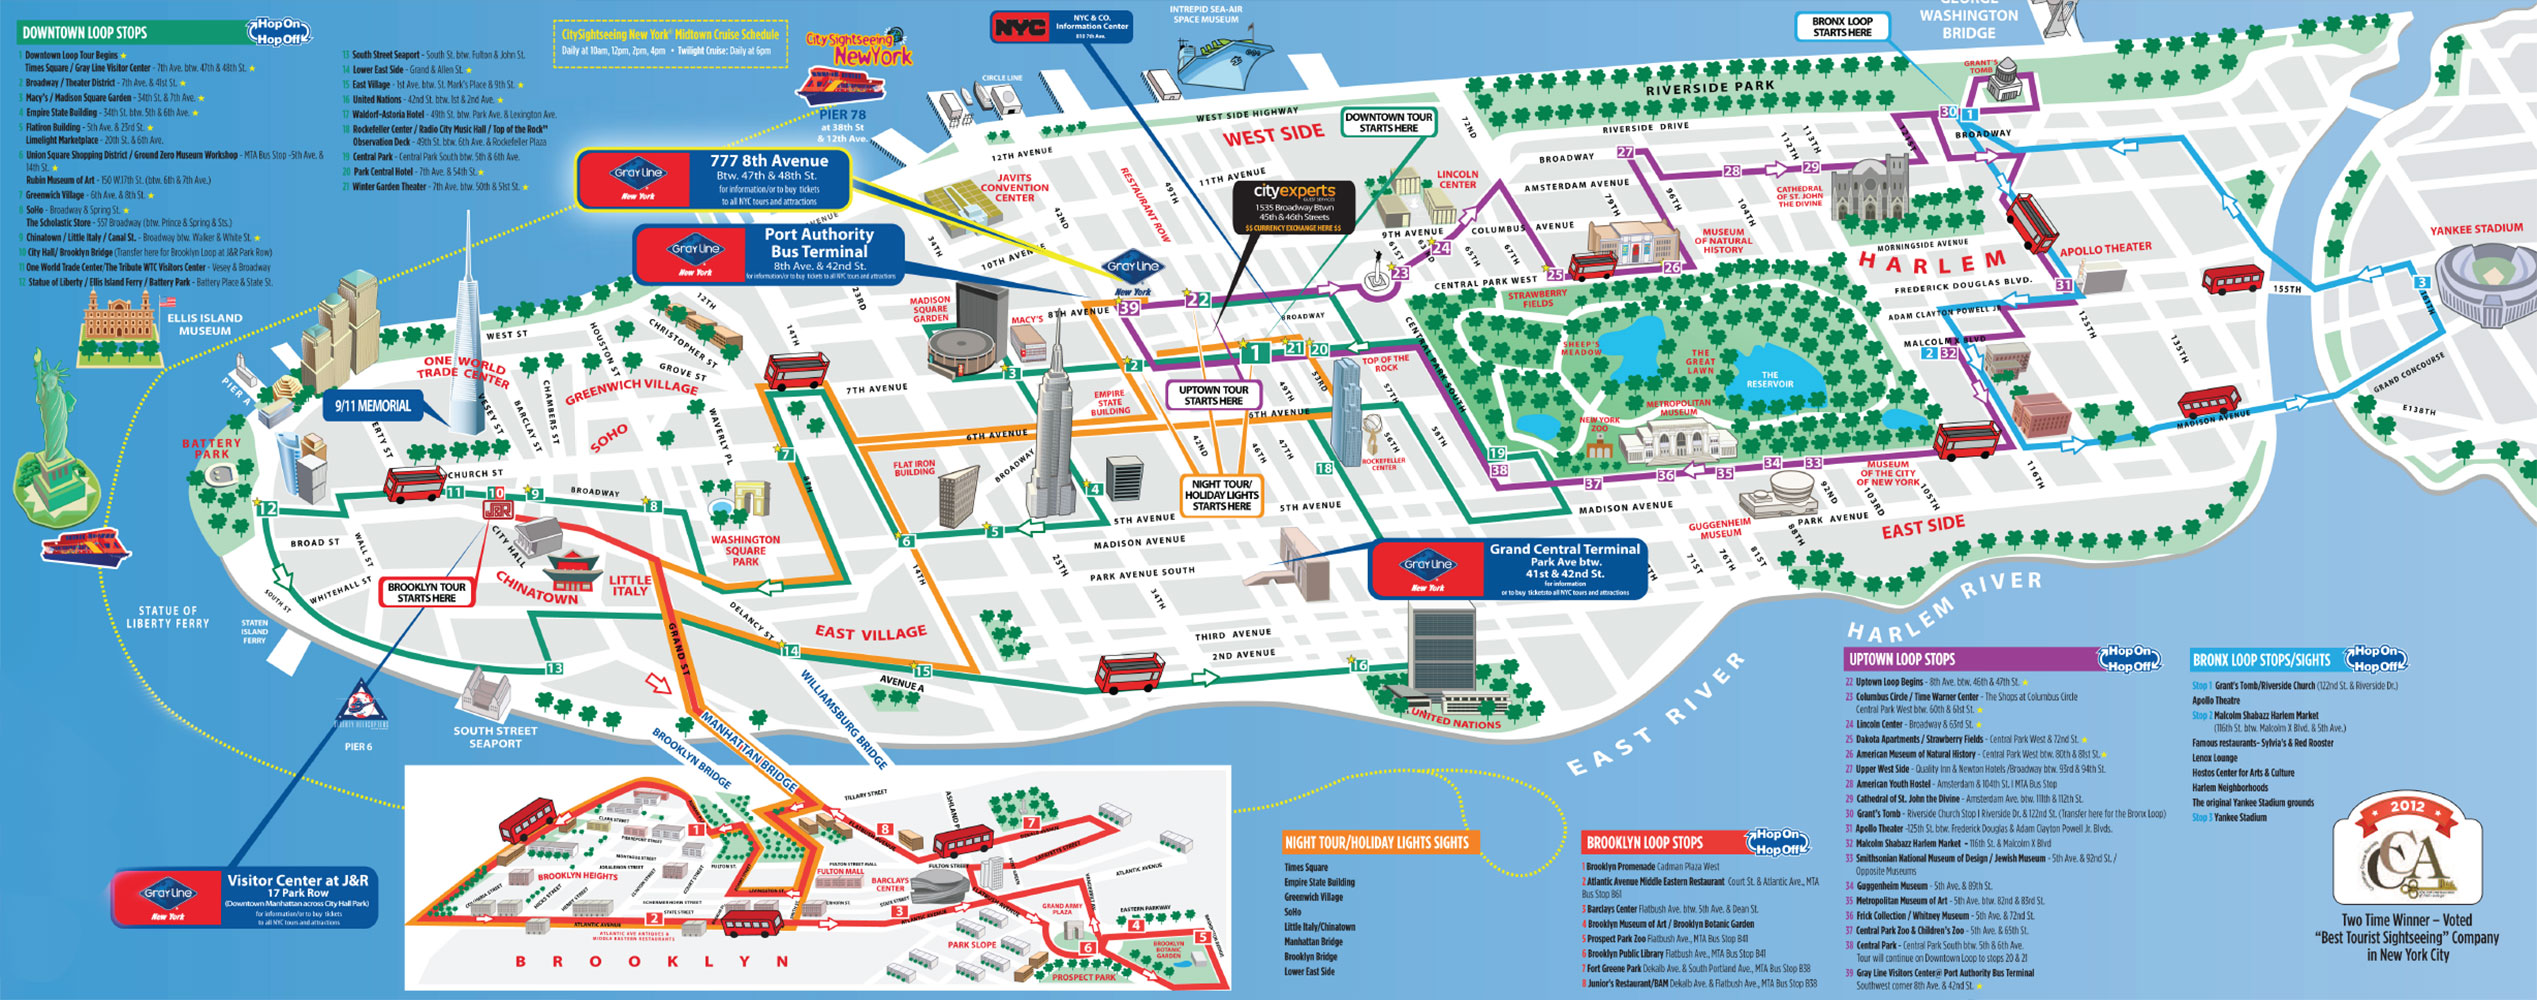 Tourist Attractions In New York Map New York Tourist Attractions – Tourist Map New York City